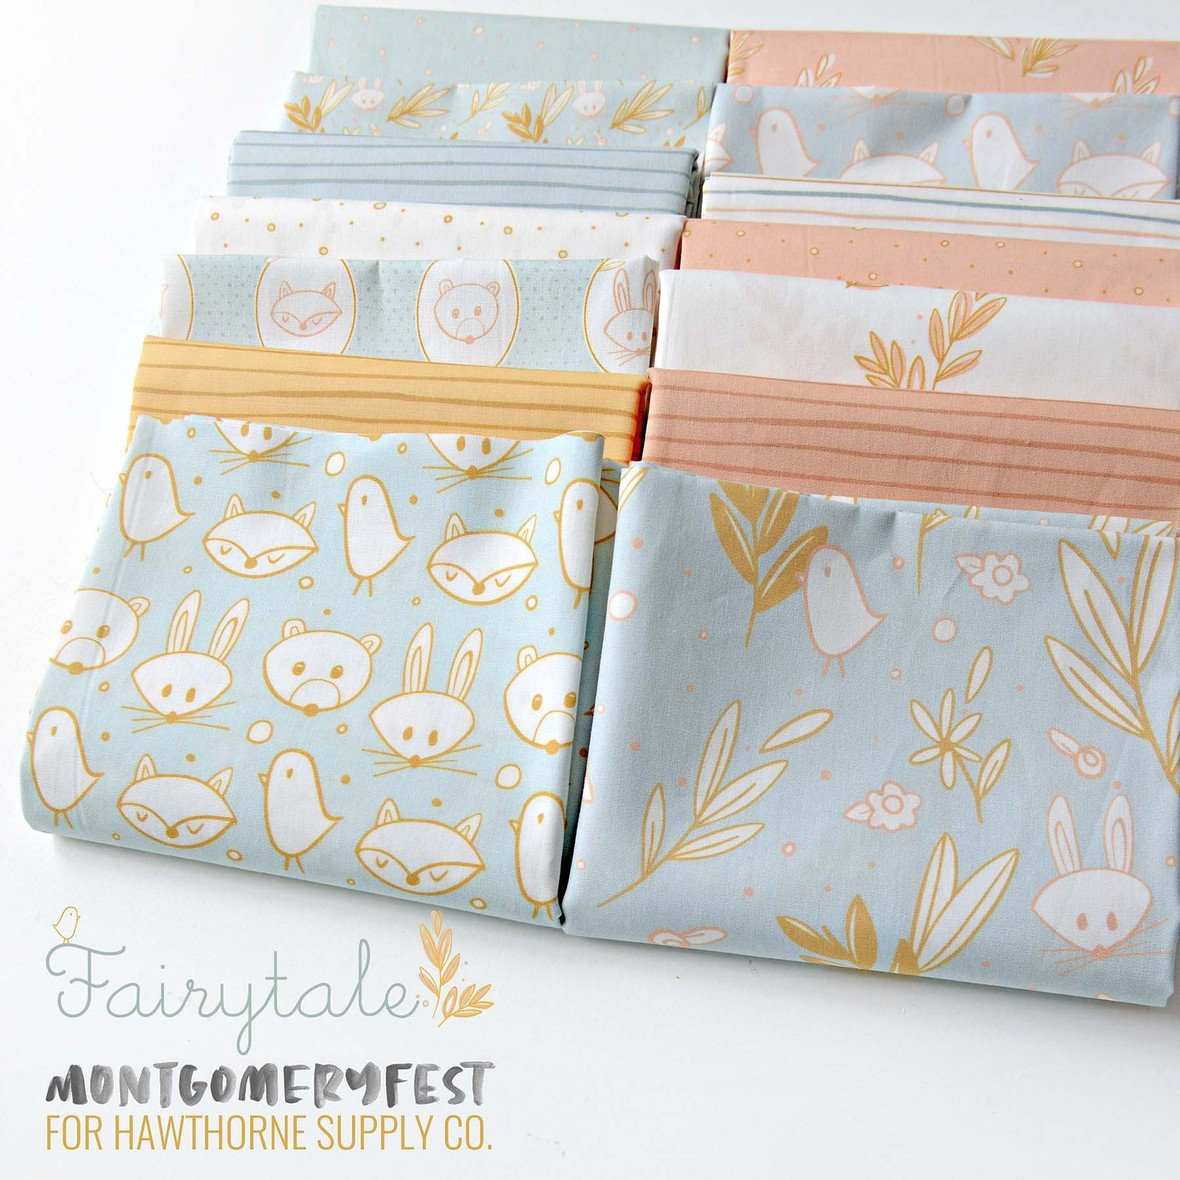 Fairytale Fabric MontgomeryFest available at Hawthorne Supply Co